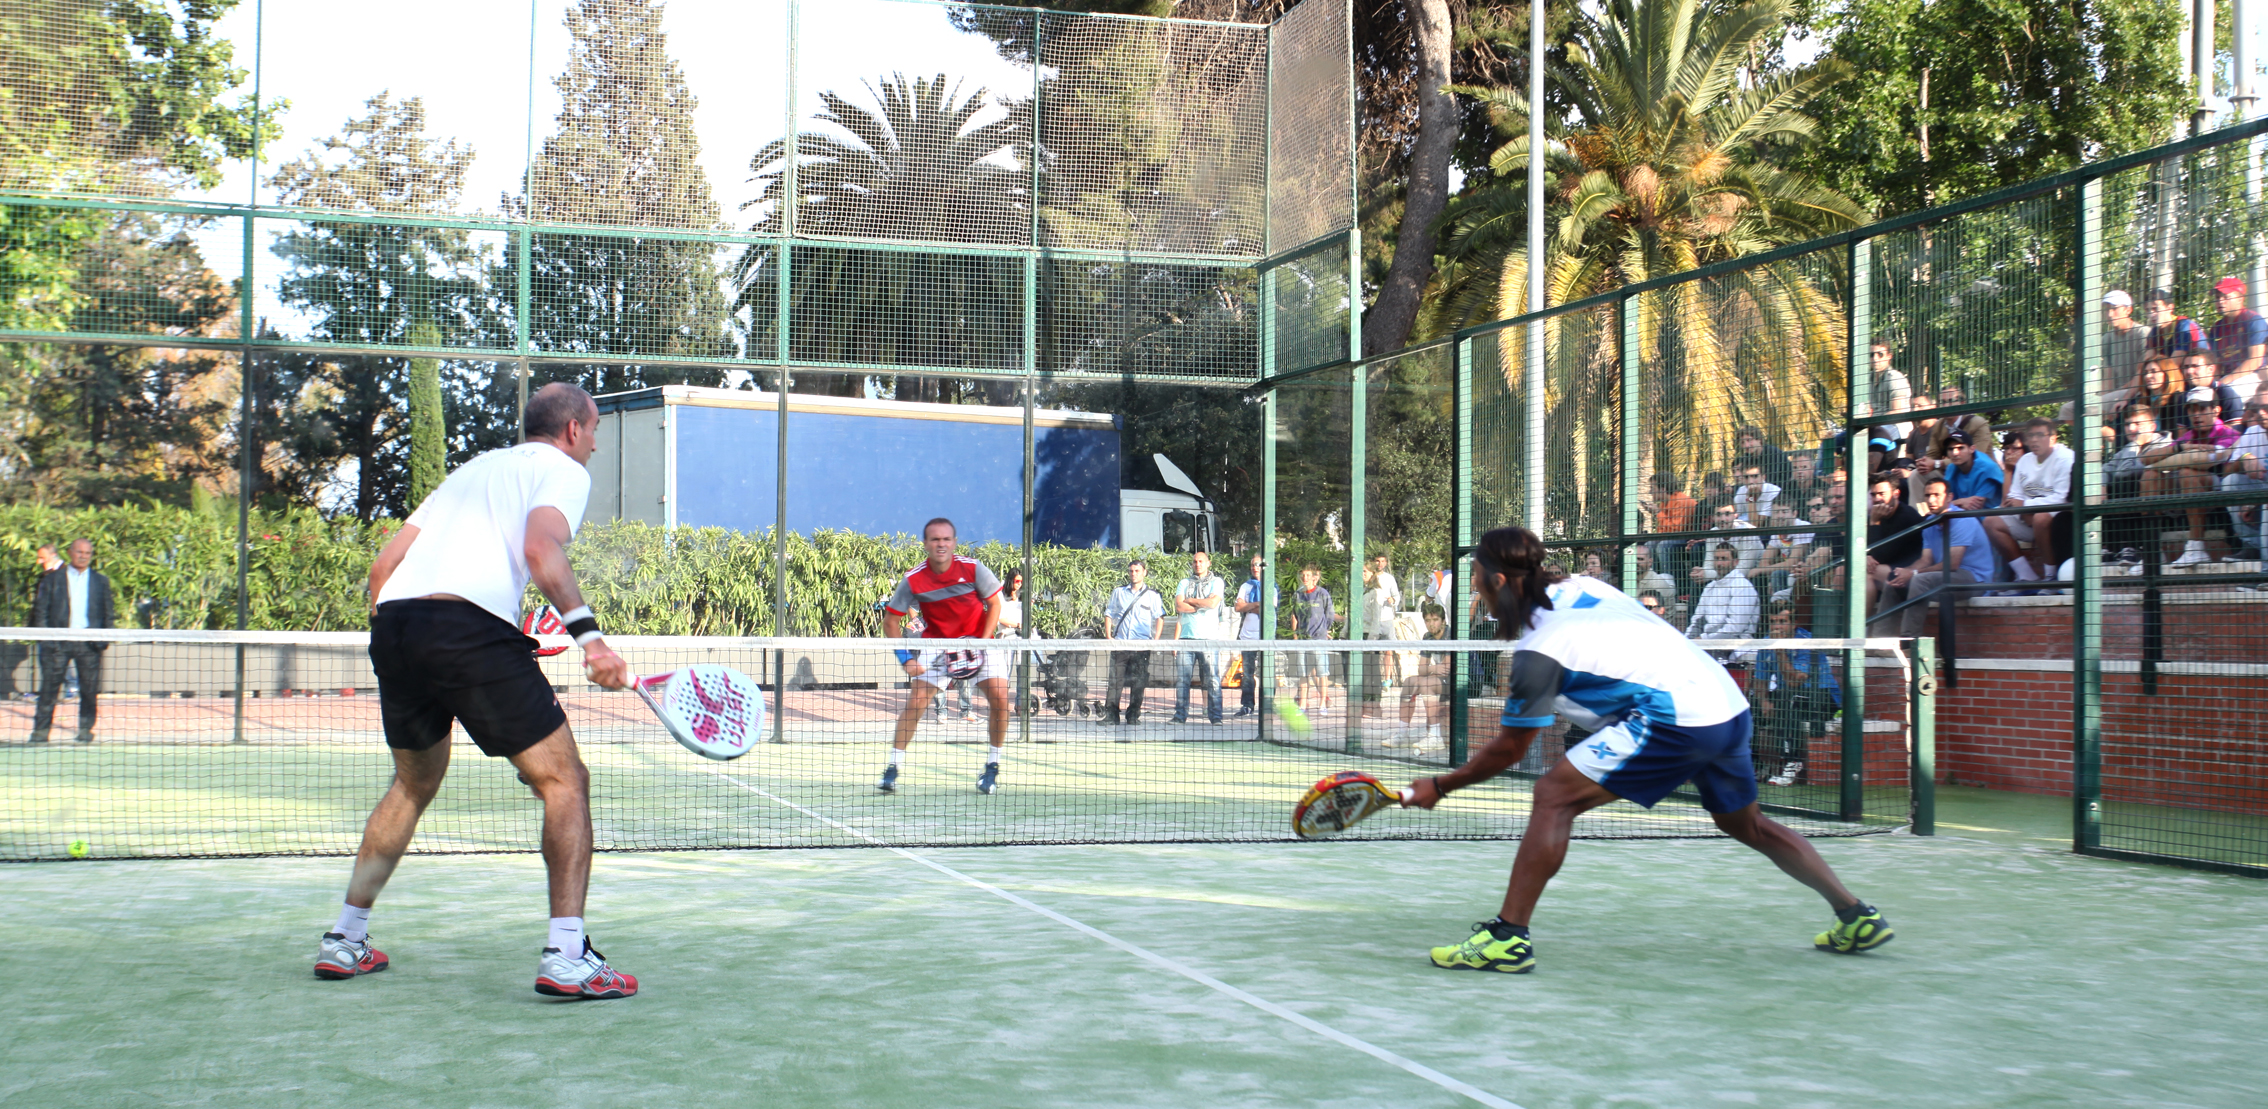 padel playing usa